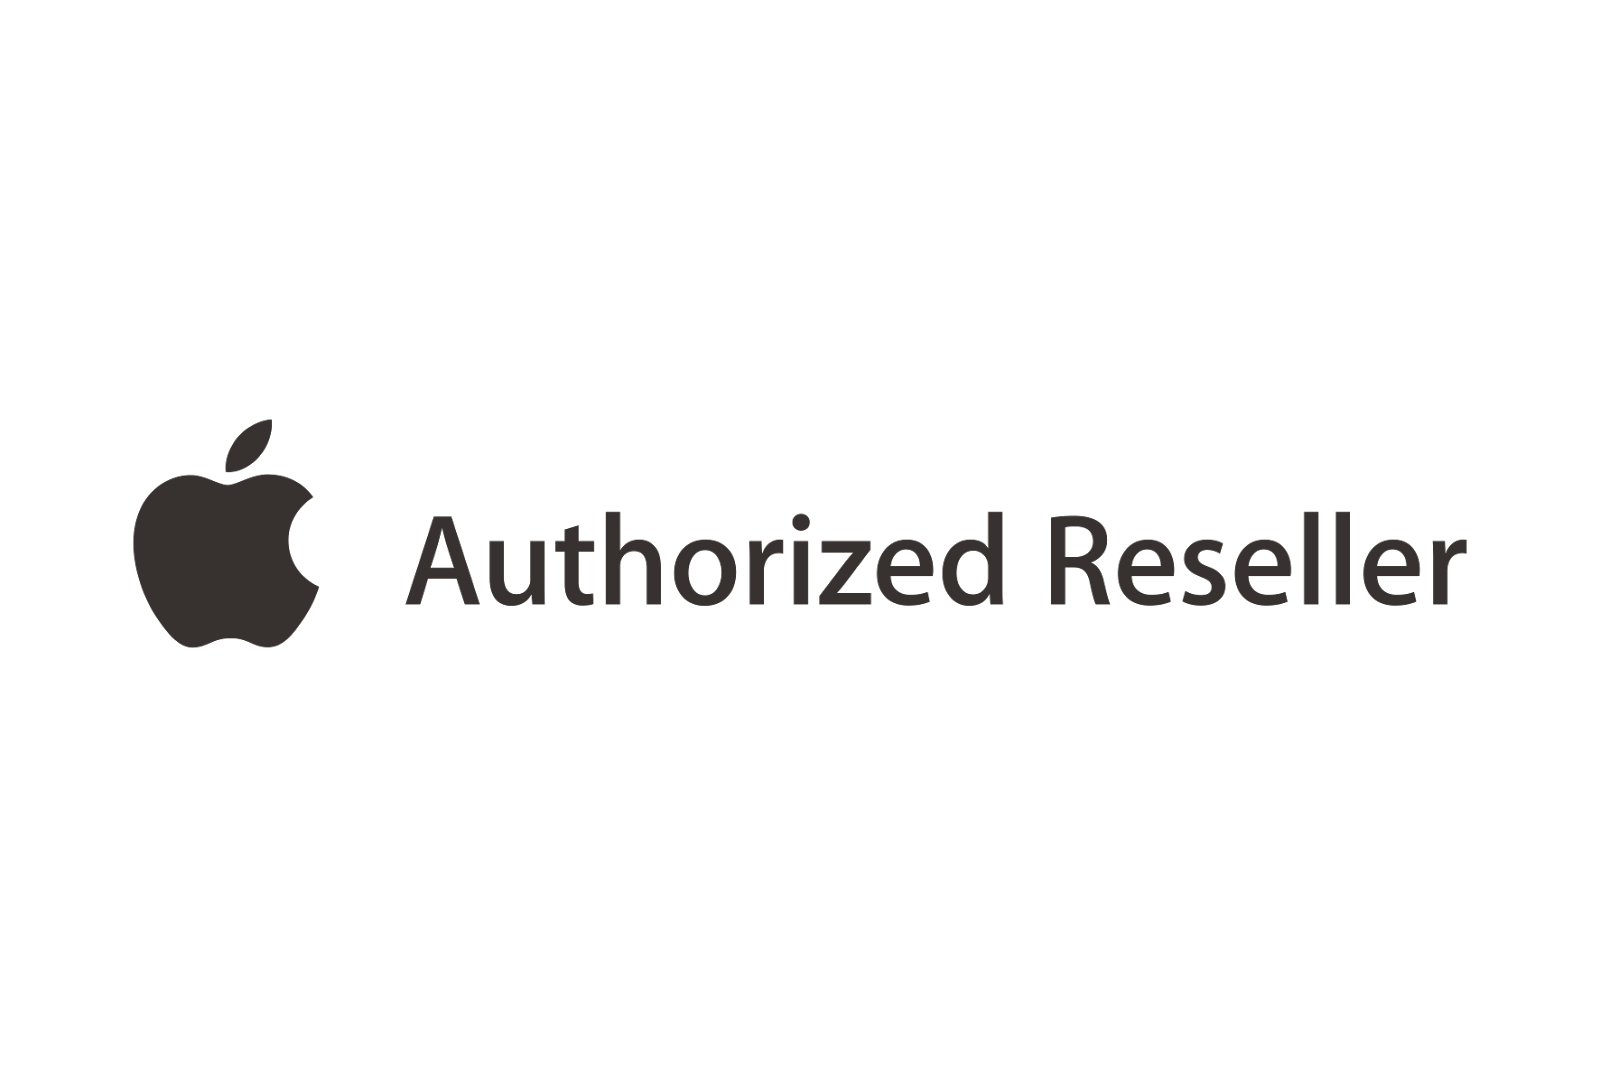 Apple Authorized Dealer PNG-PlusPNG pluspng.com-1600 - Apple Authorized Dealer PNG - Apple Authorized Reseller PNG